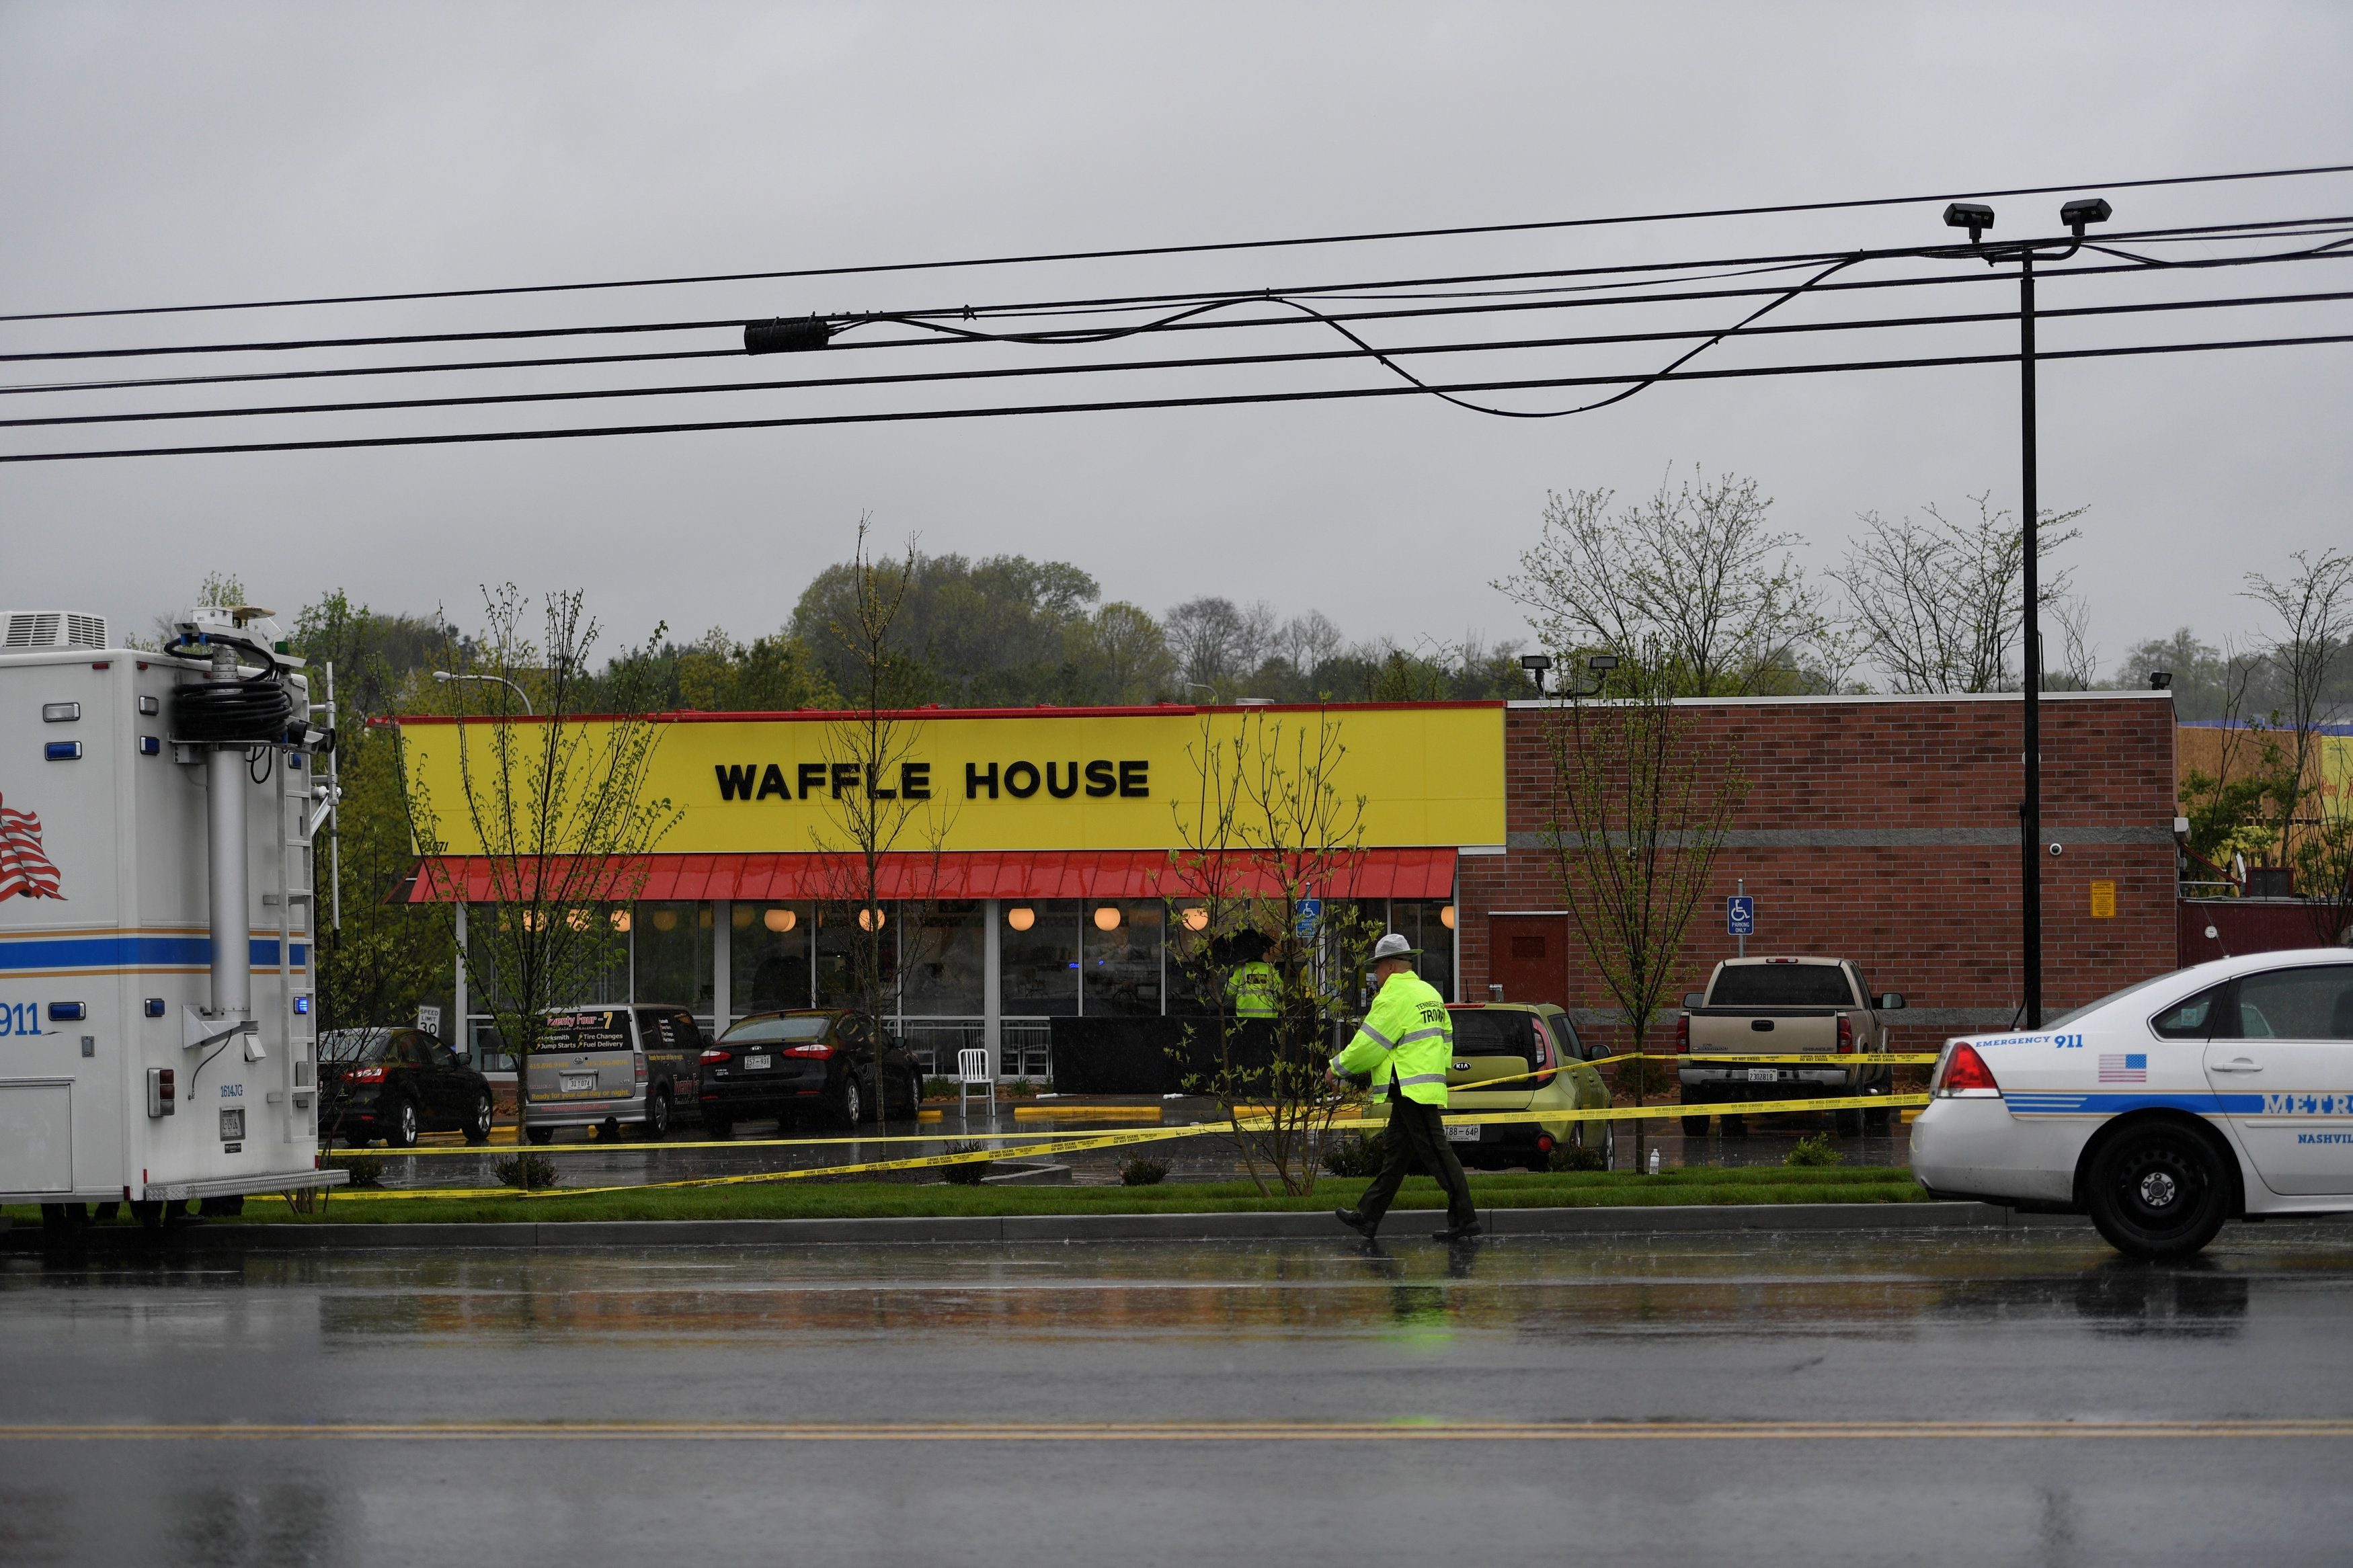 Police inspect the scene of the fatal shooting at a Waffle House restaurant near Nashville, Tennessee, on April 22.